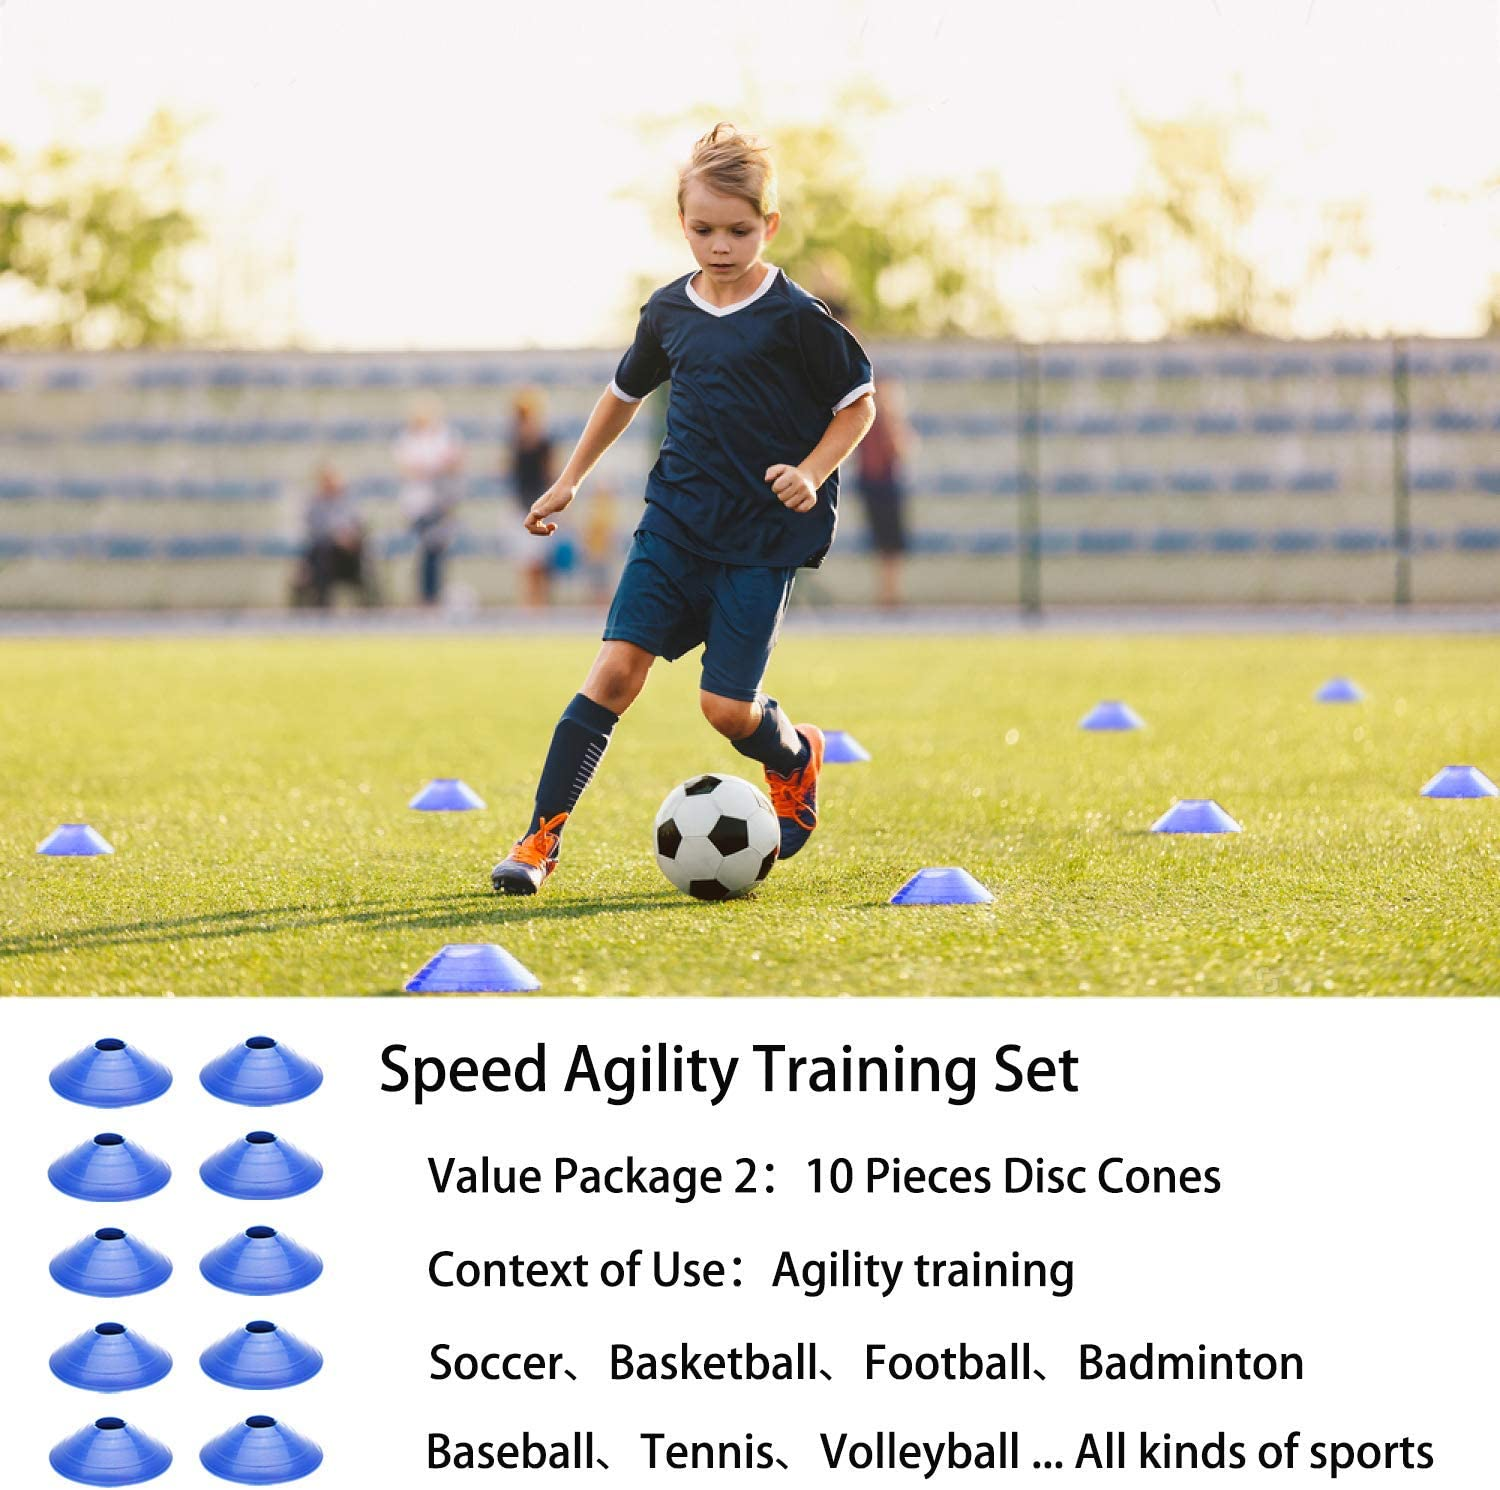 Speed Training Equipment for Soccer Football Basketball 1 Sports Headband 4 Steel Stakes 10 Disc Cones and Gym Carry Bag 1 Jump Rope Includes 1 Agility Ladder Speed Agility Training Set